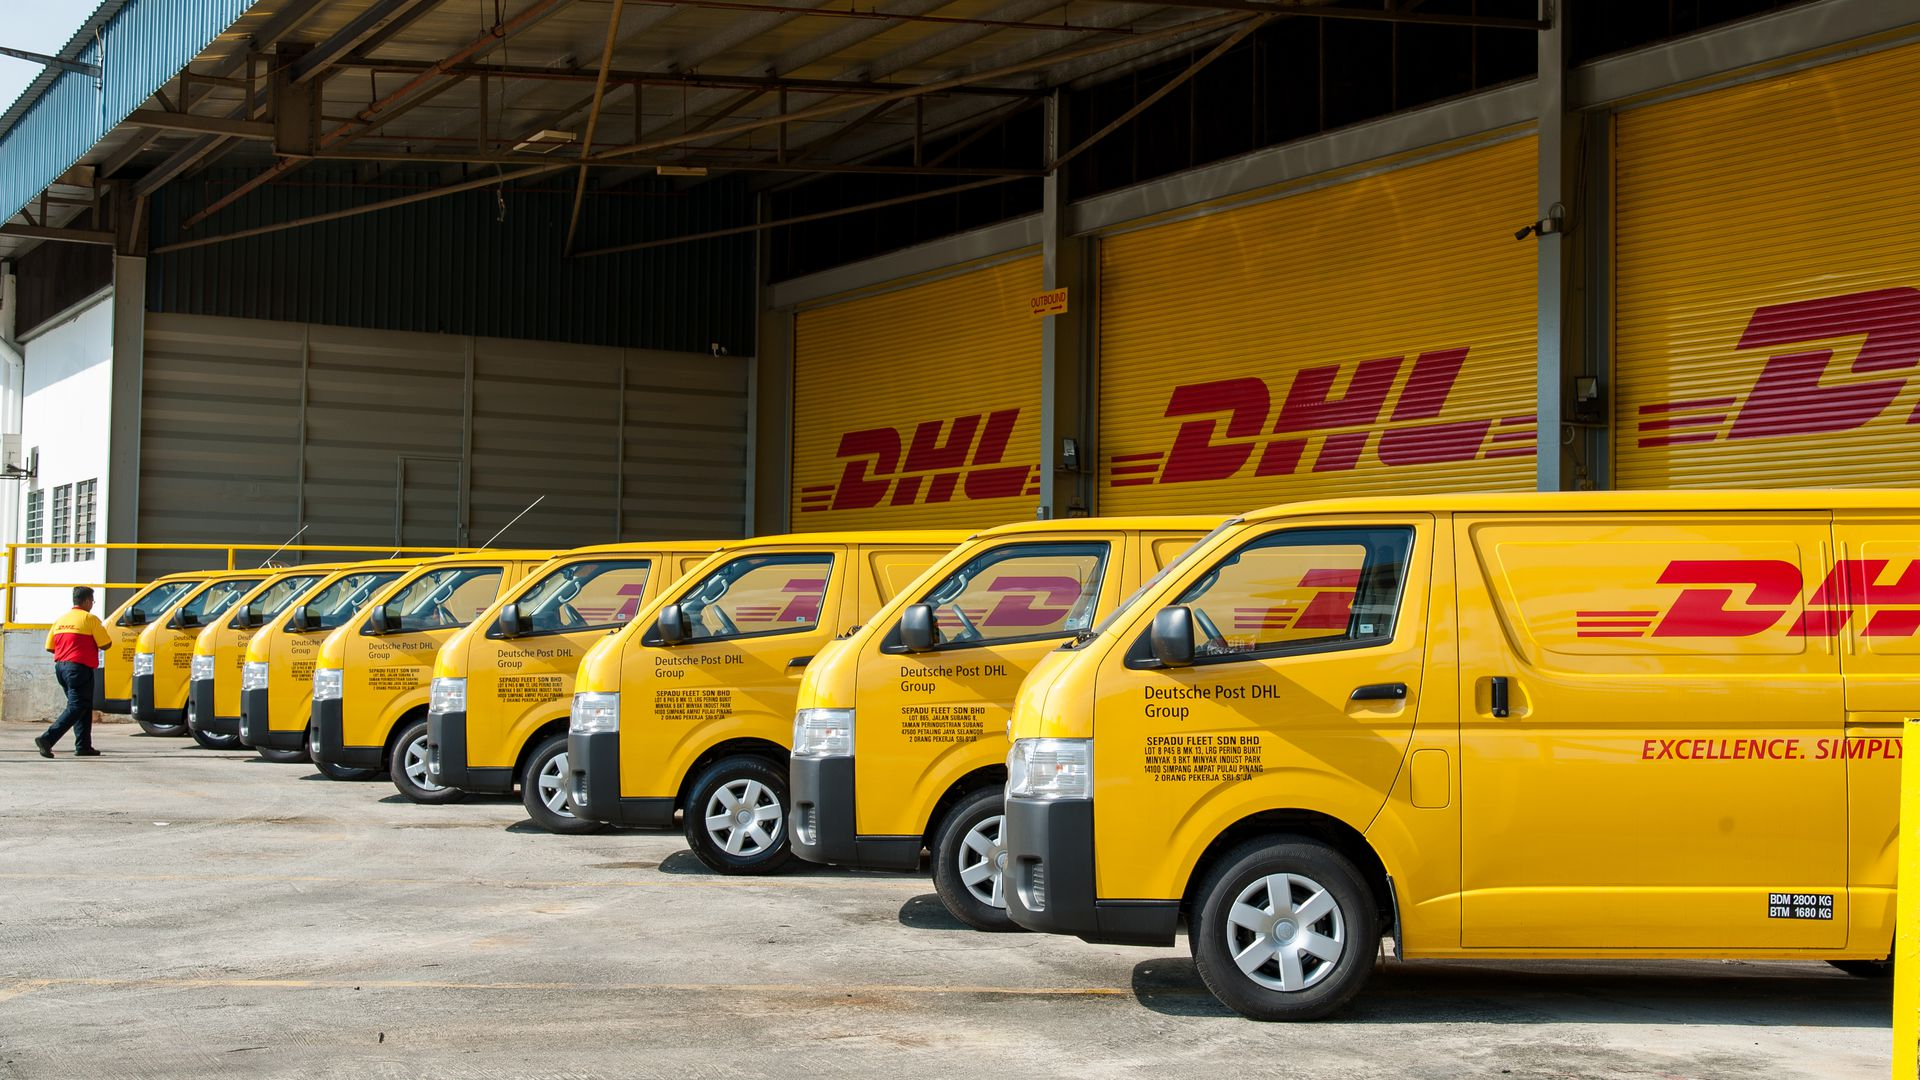 DHL delivery vans in Malaysia